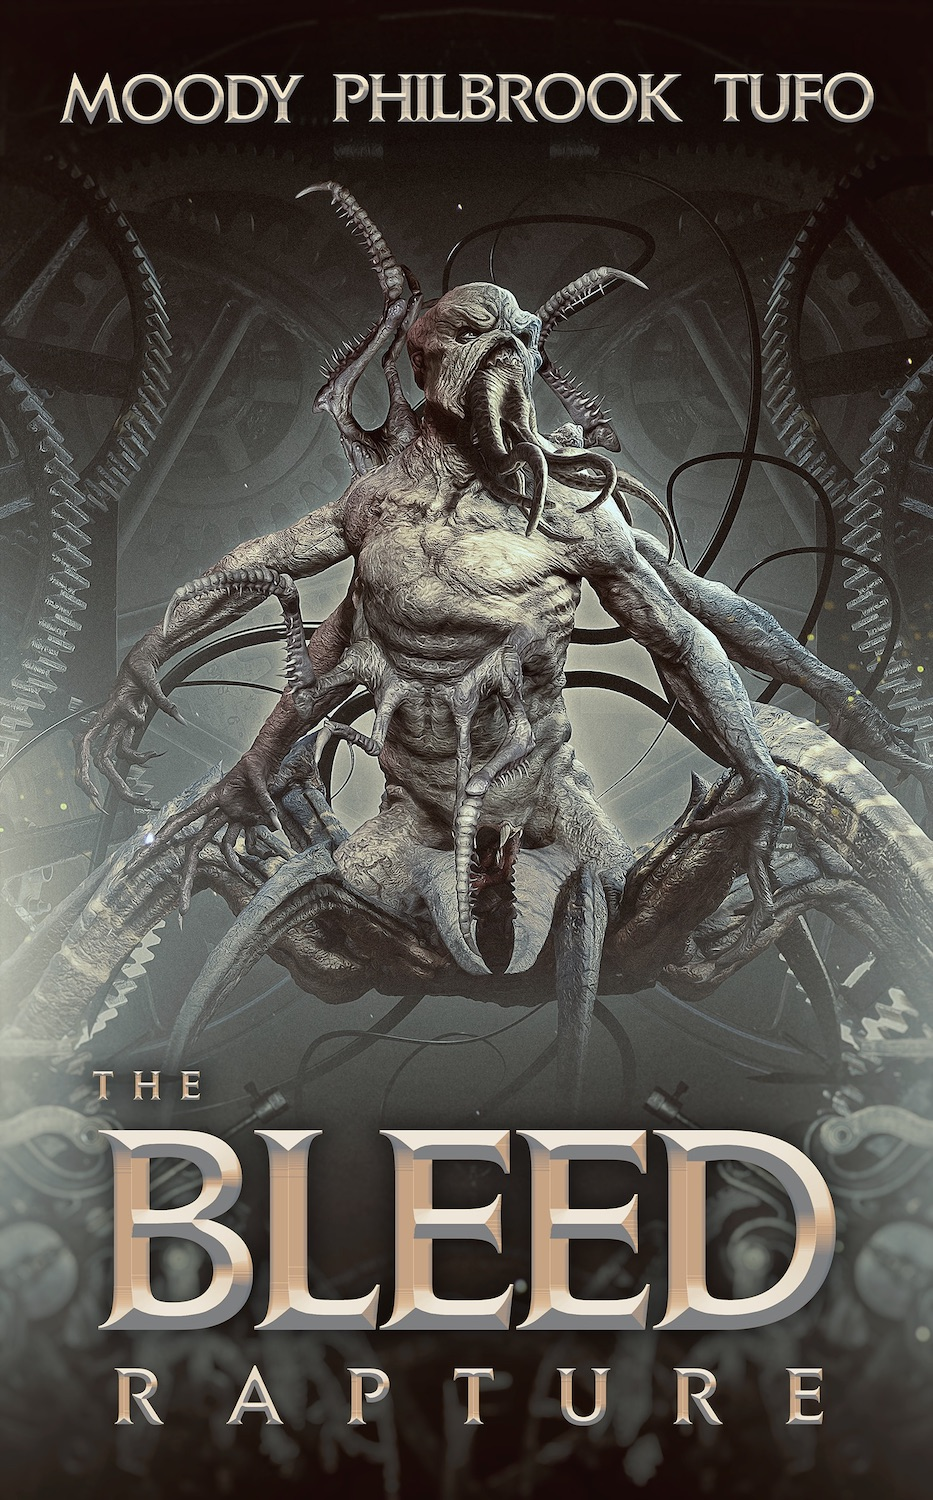 The Bleed: Rapture by David Moody, Chris Philbrook, and Mark Tufo